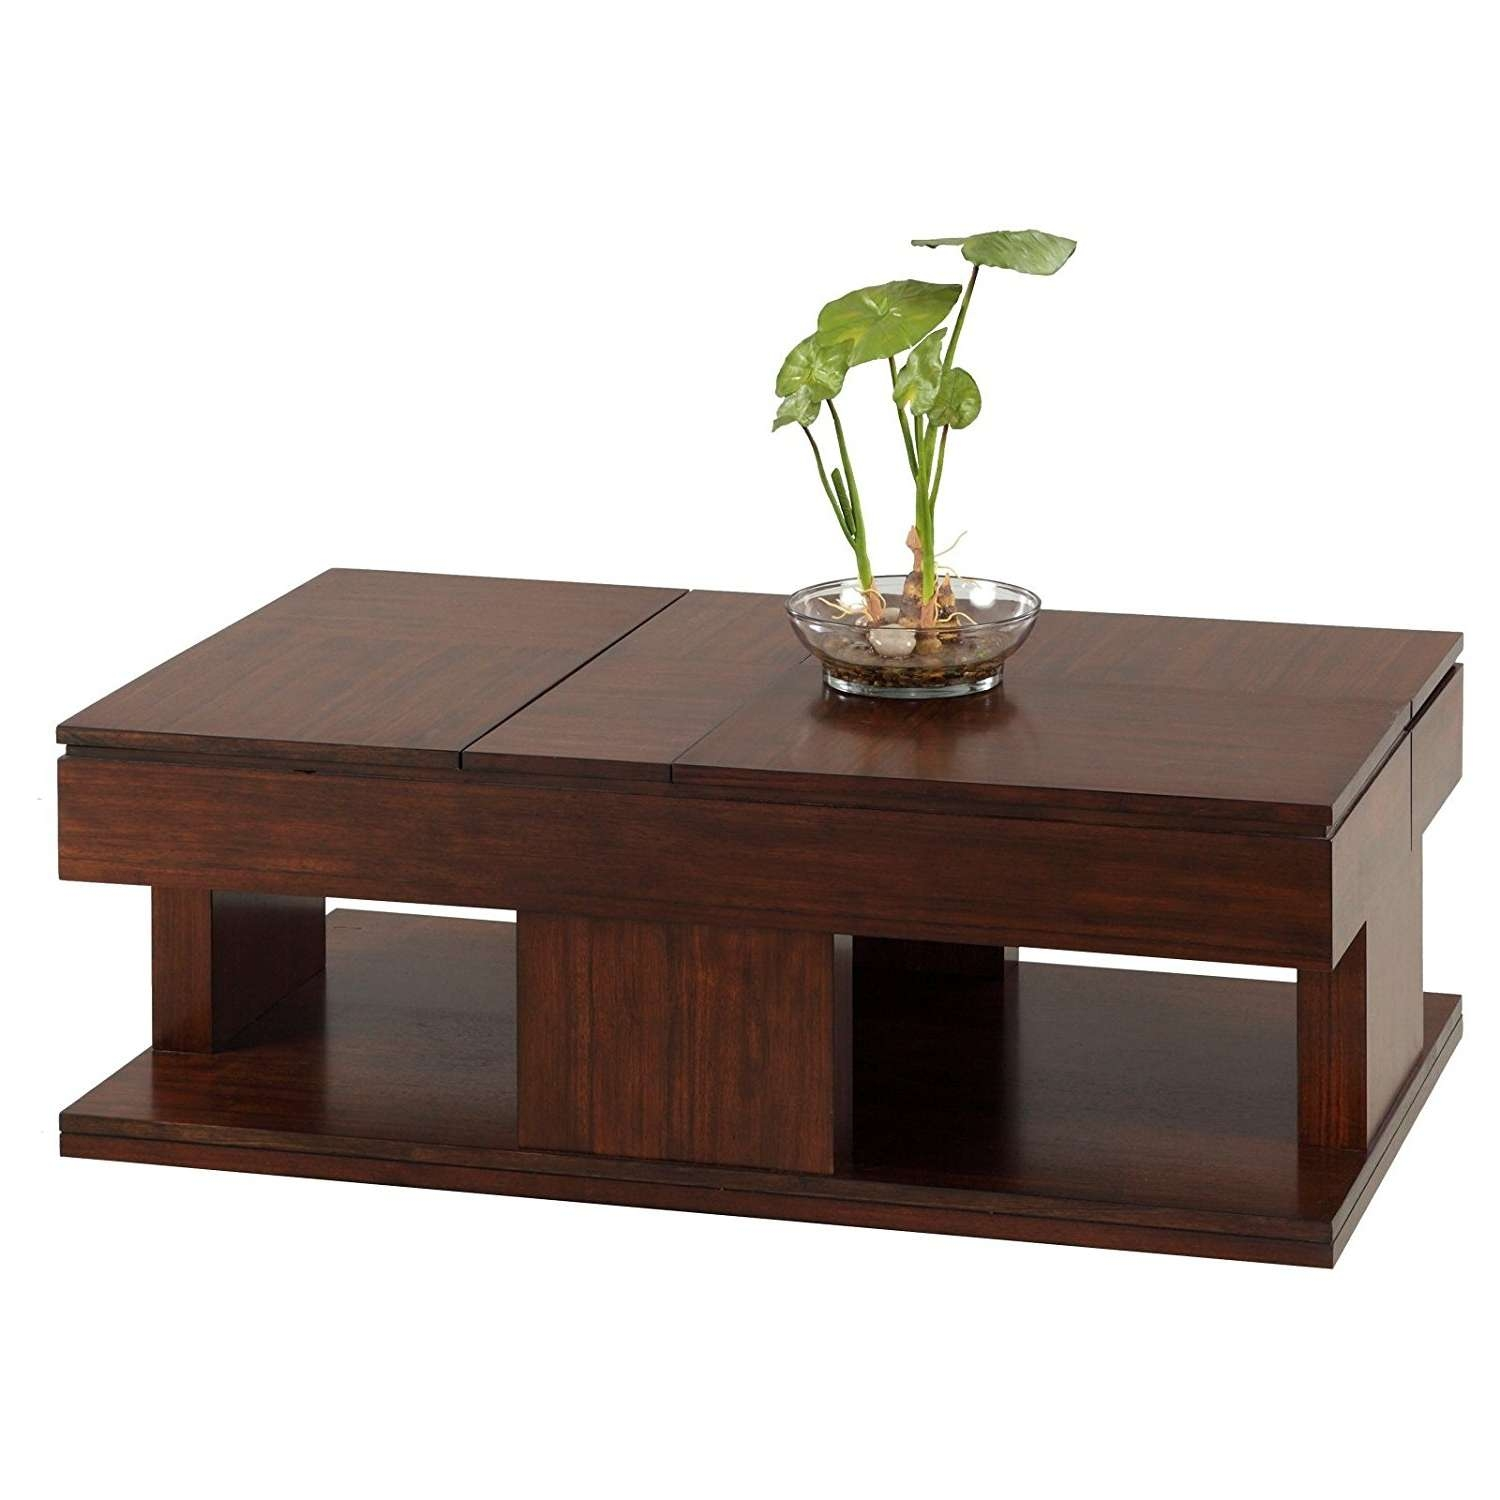 Collection Waverly Lift Top Coffee Table – Mediasupload Intended For Preferred Waverly Lift Top Coffee Tables (View 8 of 20)